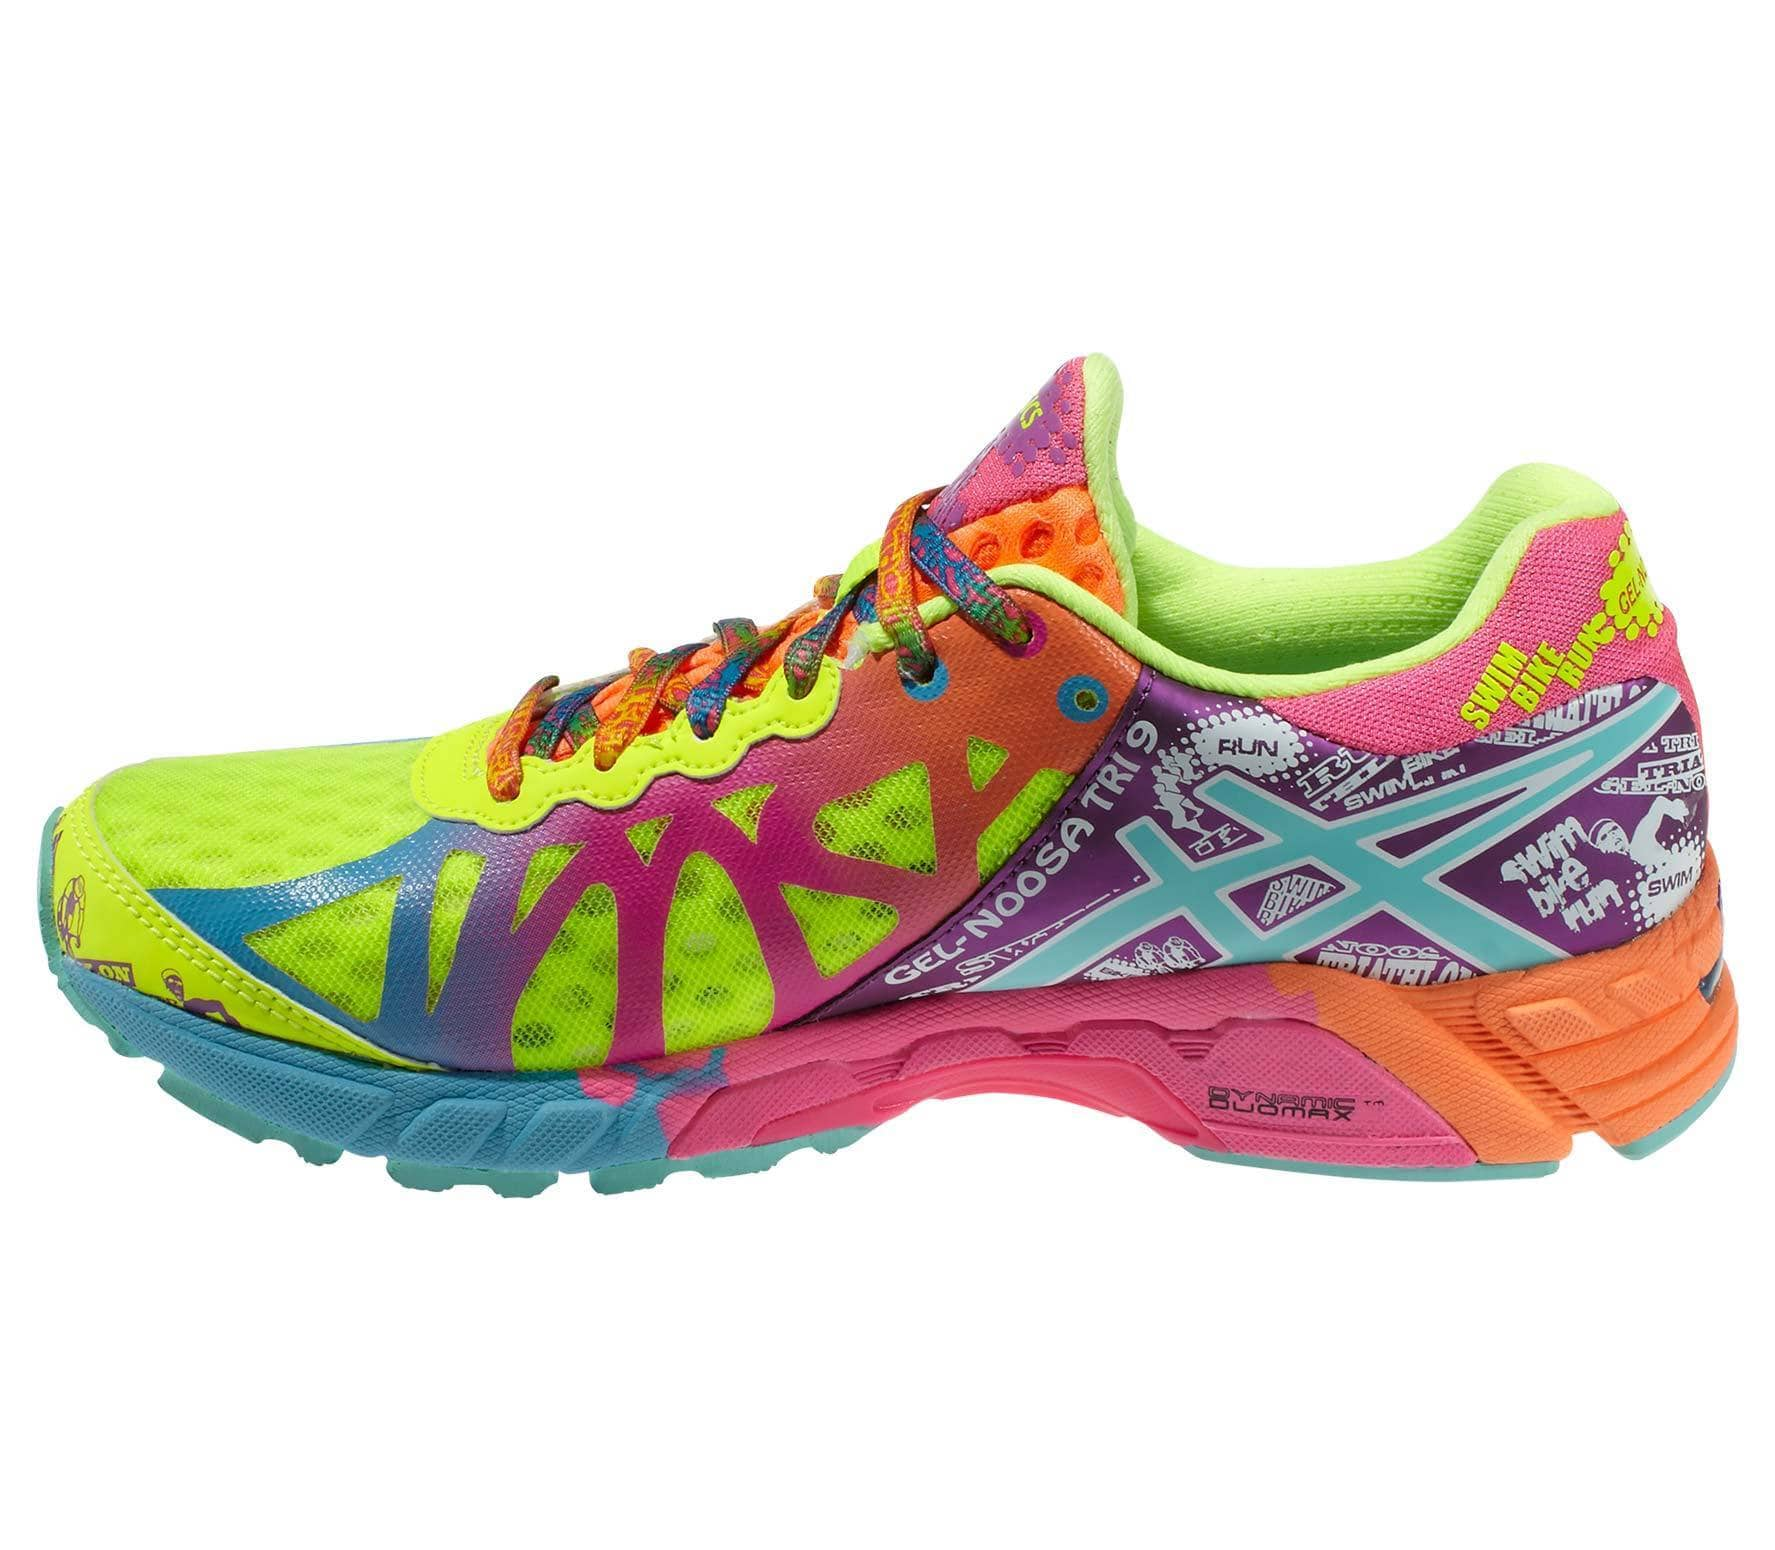 sports shoes cc1b3 8e63d Asics - Gel-Noosa Tri 9 women s running shoes (yellow purple)